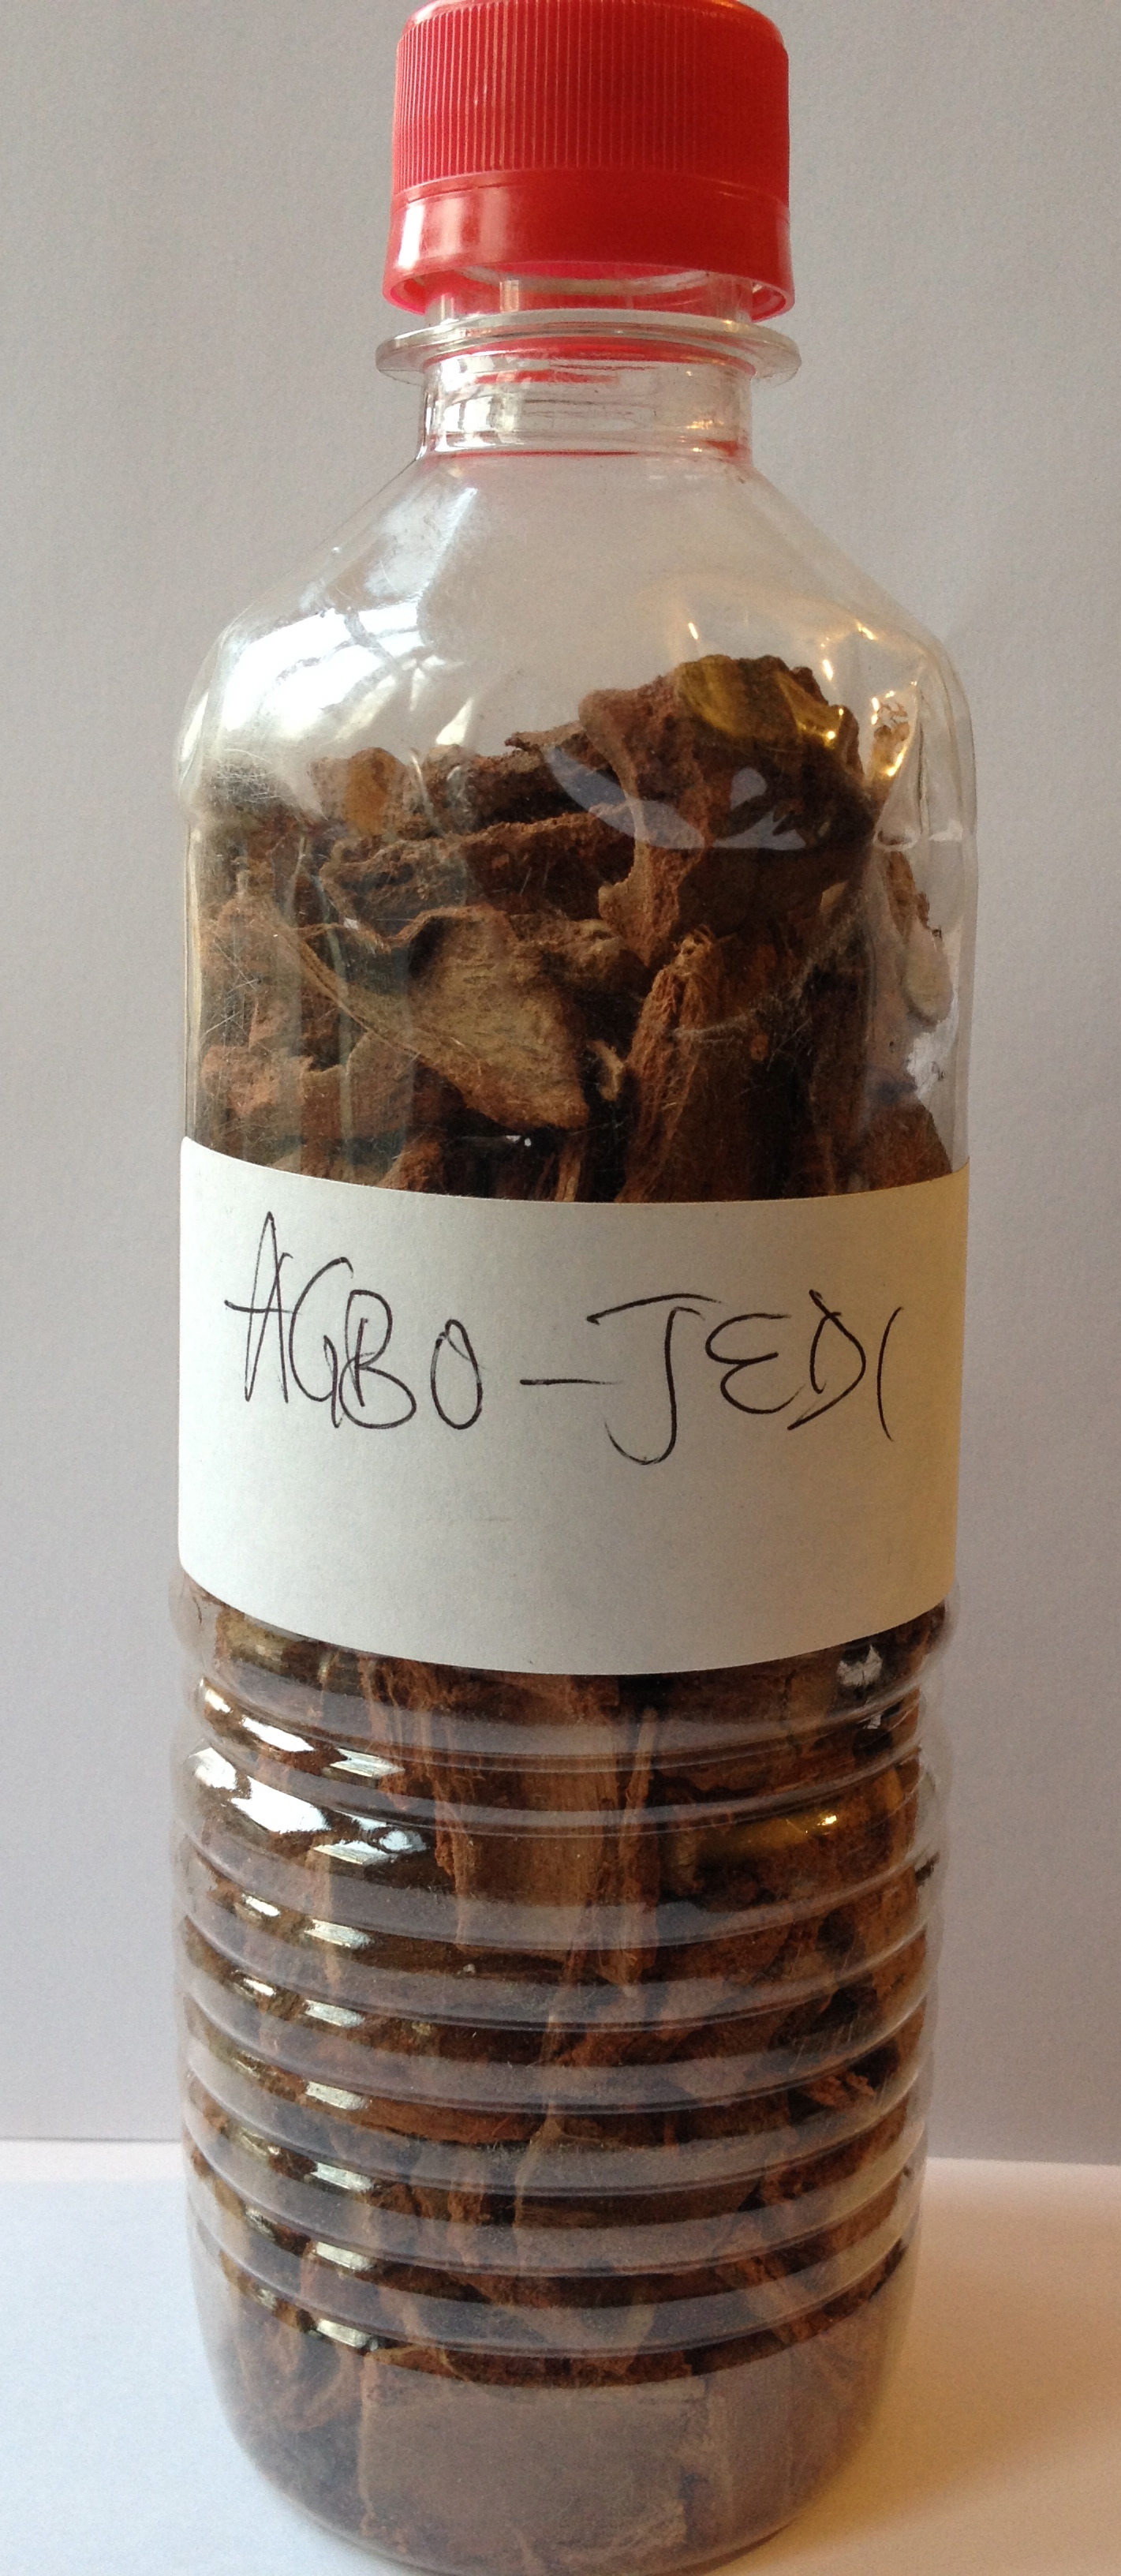 Popular Traditional Nigerian Herbal Drink, Agbo Jedi // Source: gloryroots.com